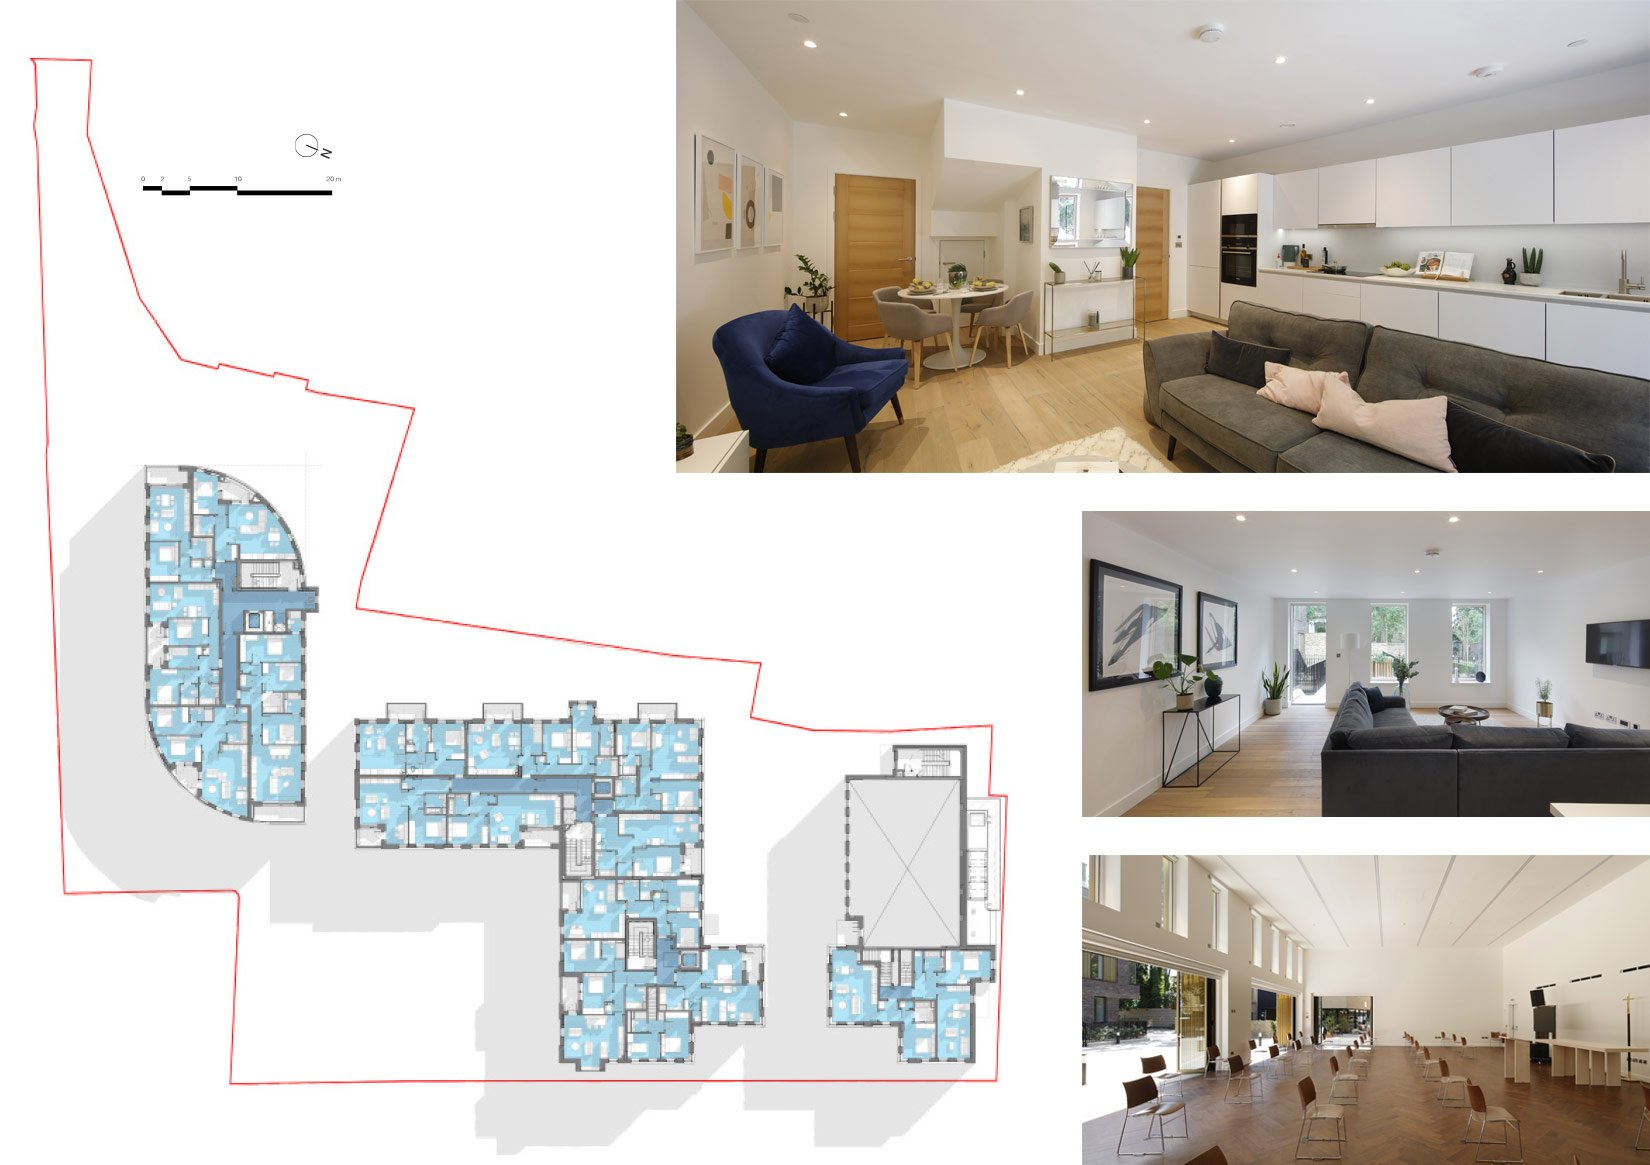 Hackney Gardens, Floor Plan and Interiors